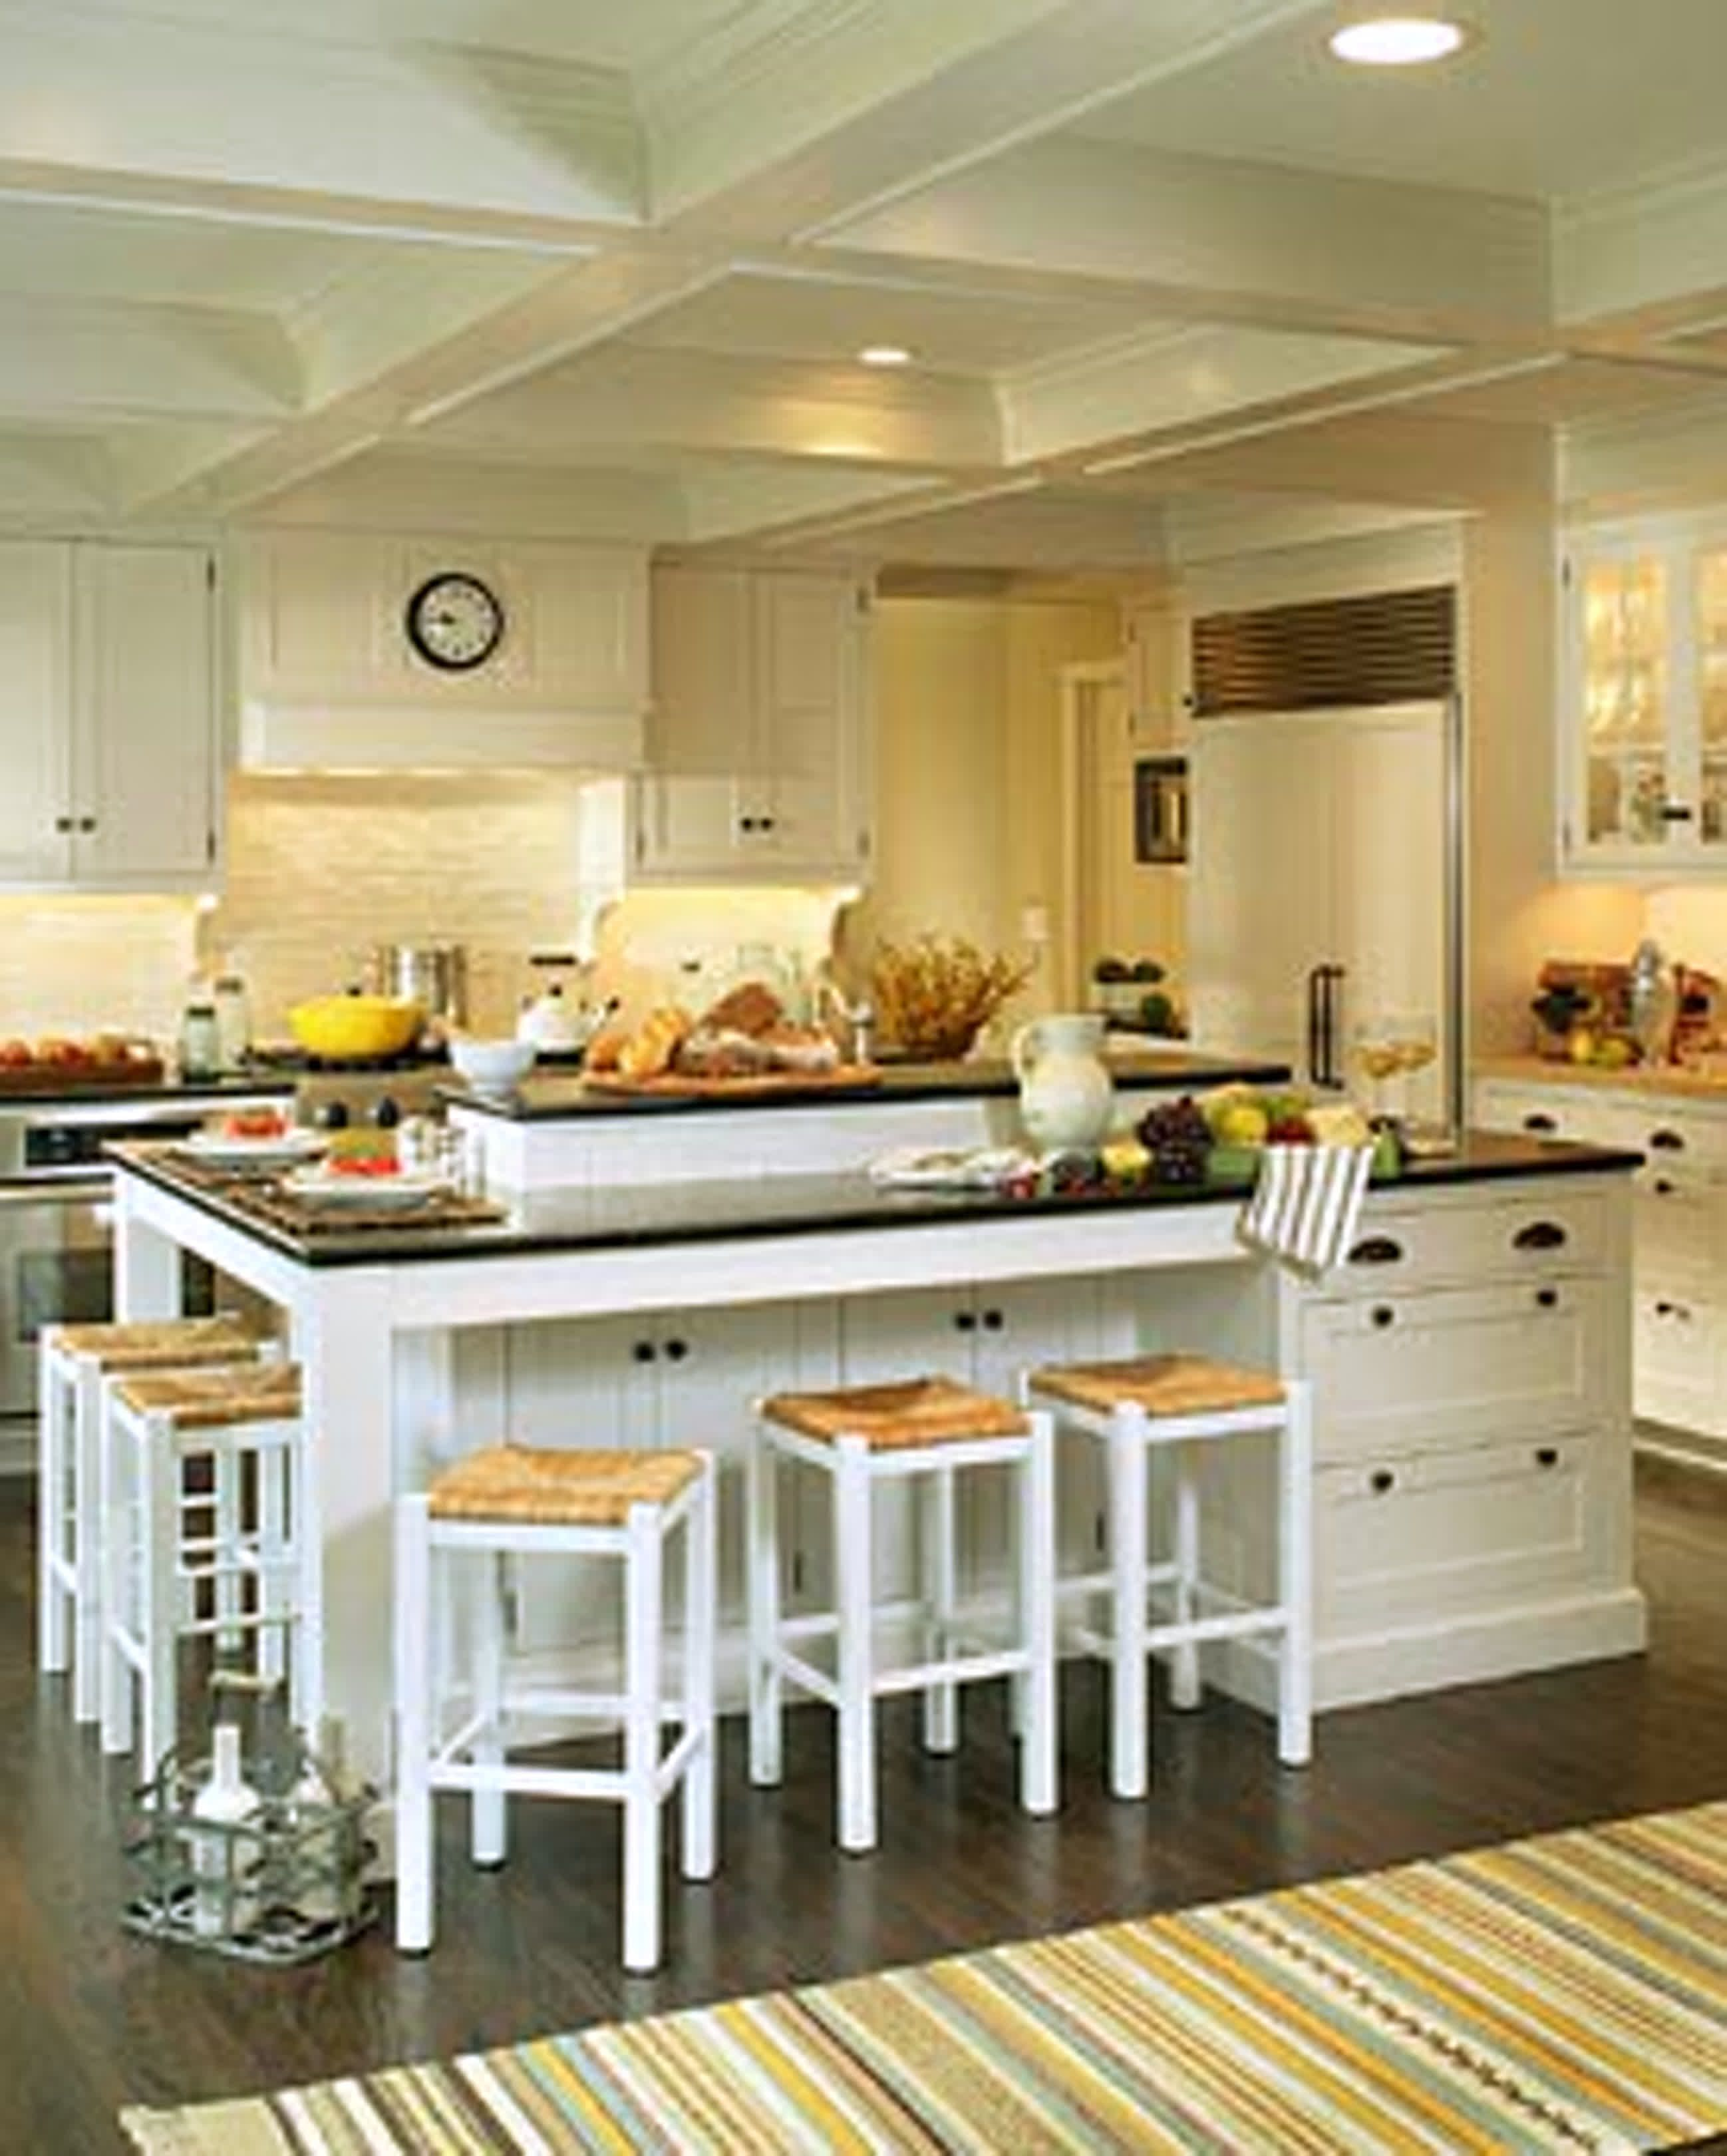 Kitchen Ideas With Island Kitchen Island With Seating And Sink